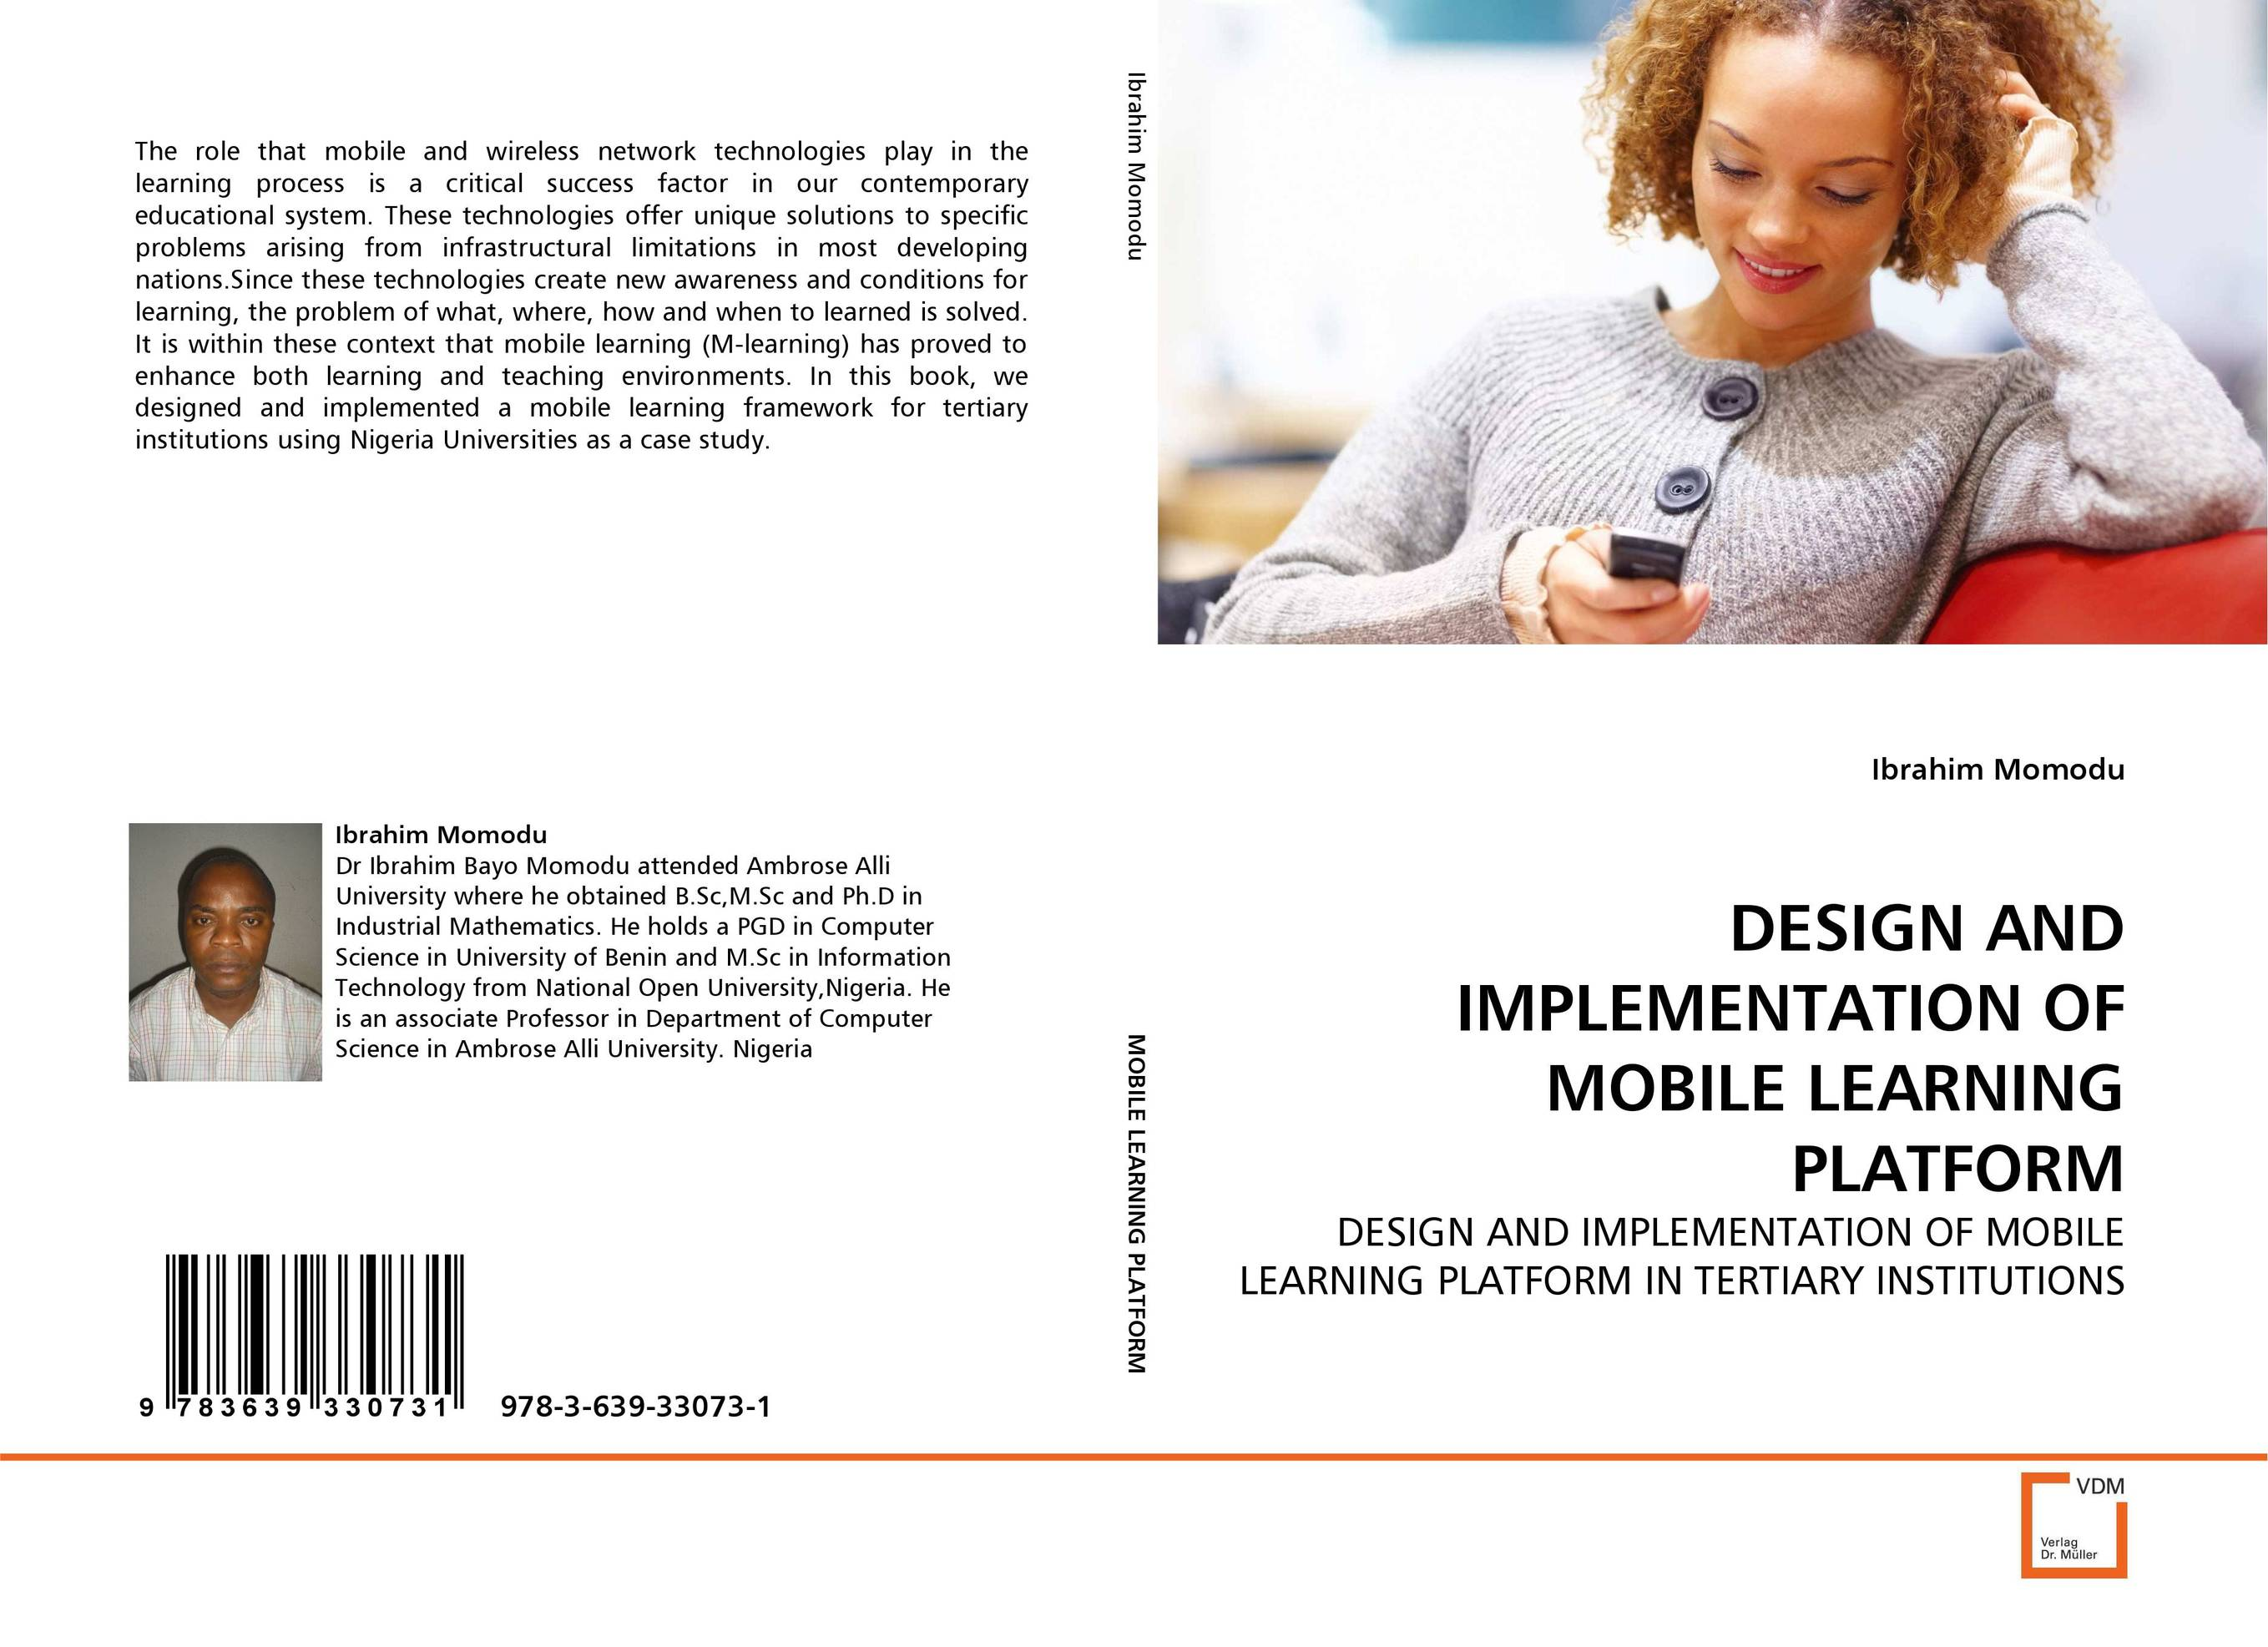 DESIGN AND IMPLEMENTATION OF MOBILE LEARNING PLATFORM mastering mobile learning